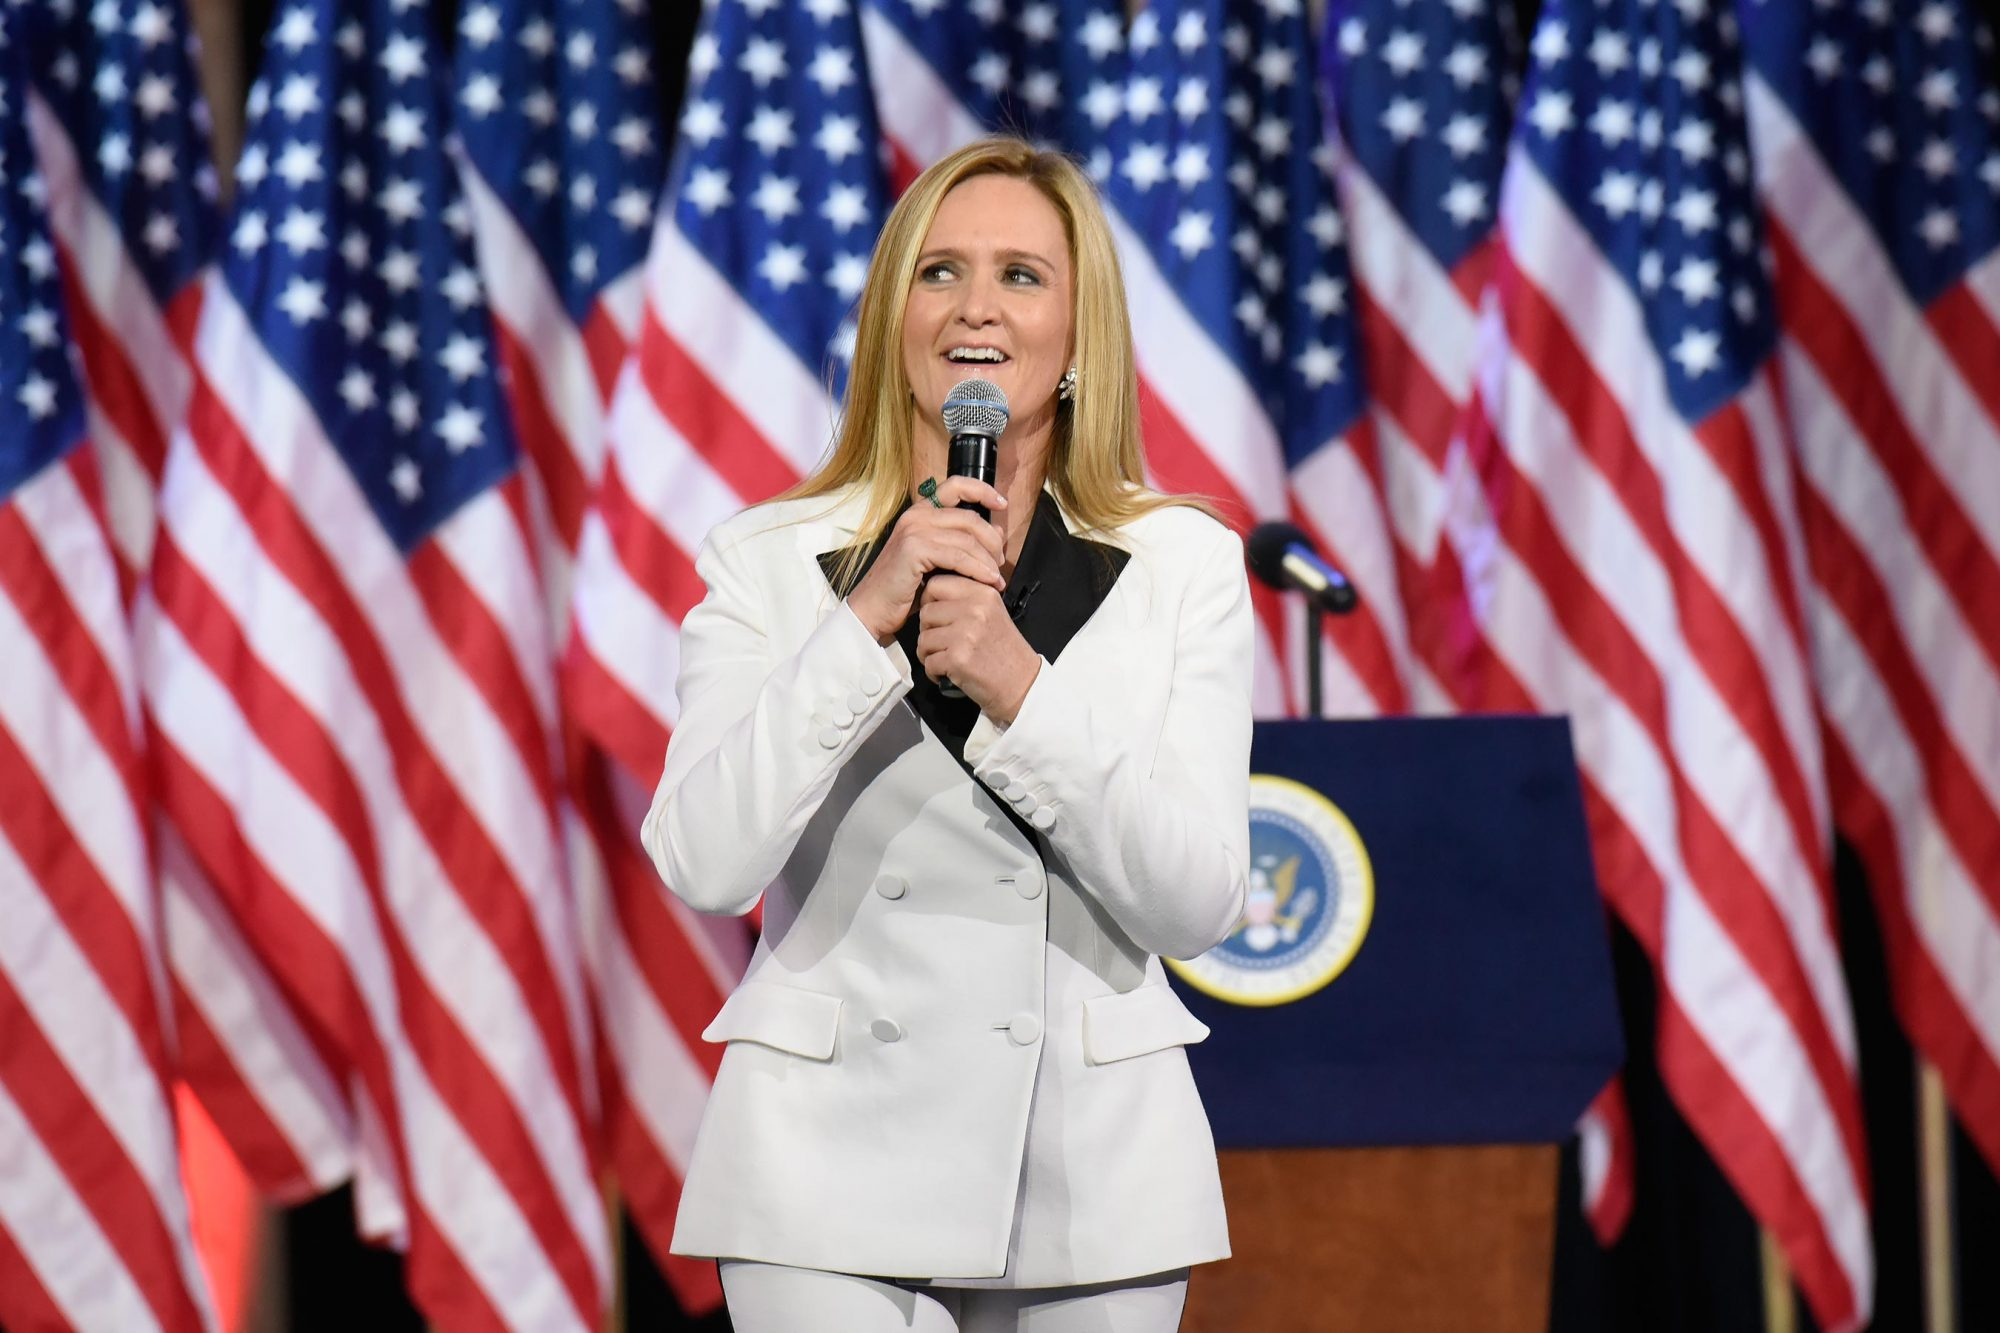 Full Frontal With Samantha Bee's Not The White House Correspondents' Dinner